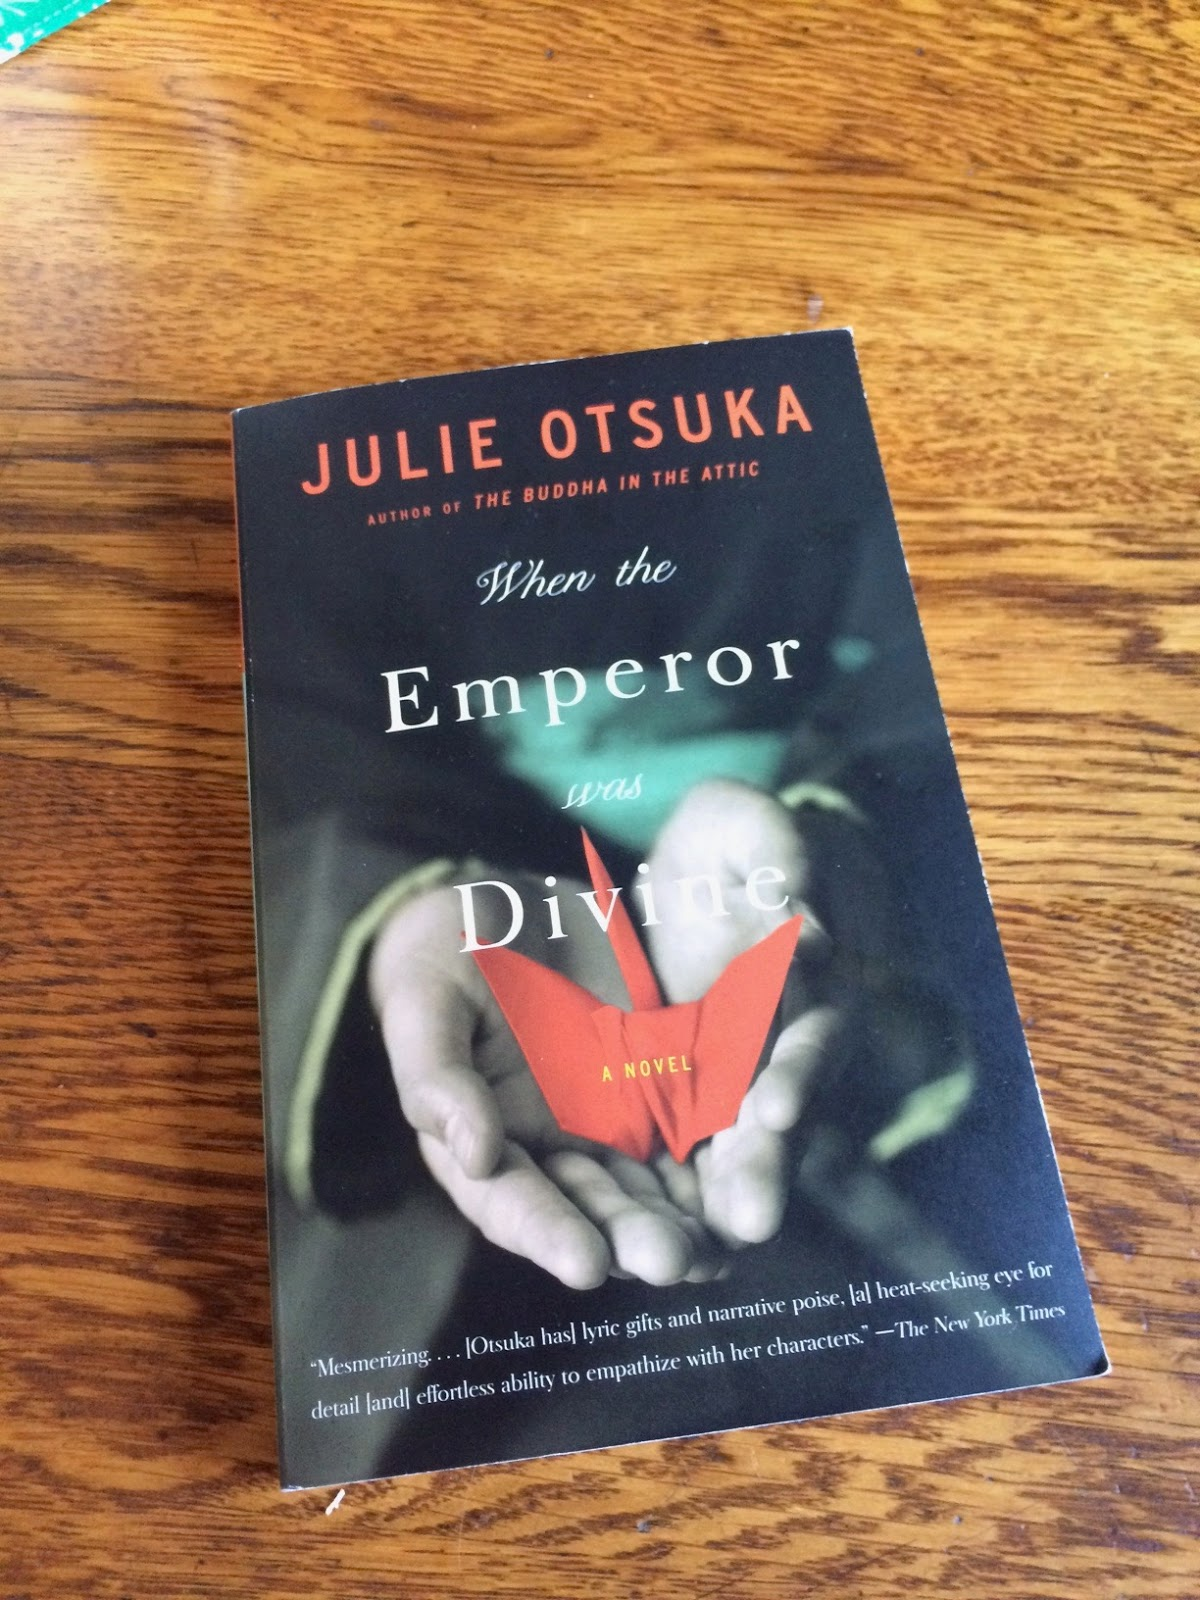 an analysis of when the emperor was divine by julie otsuka Report abuse transcript of julie otsuka when the emperor was divine on december 7th 1941, the japanese attacked pearl harbor us citizens feared another attack and war hysteria seized the country state representatives put pressure on president roosevelt to take action against those of japanese.